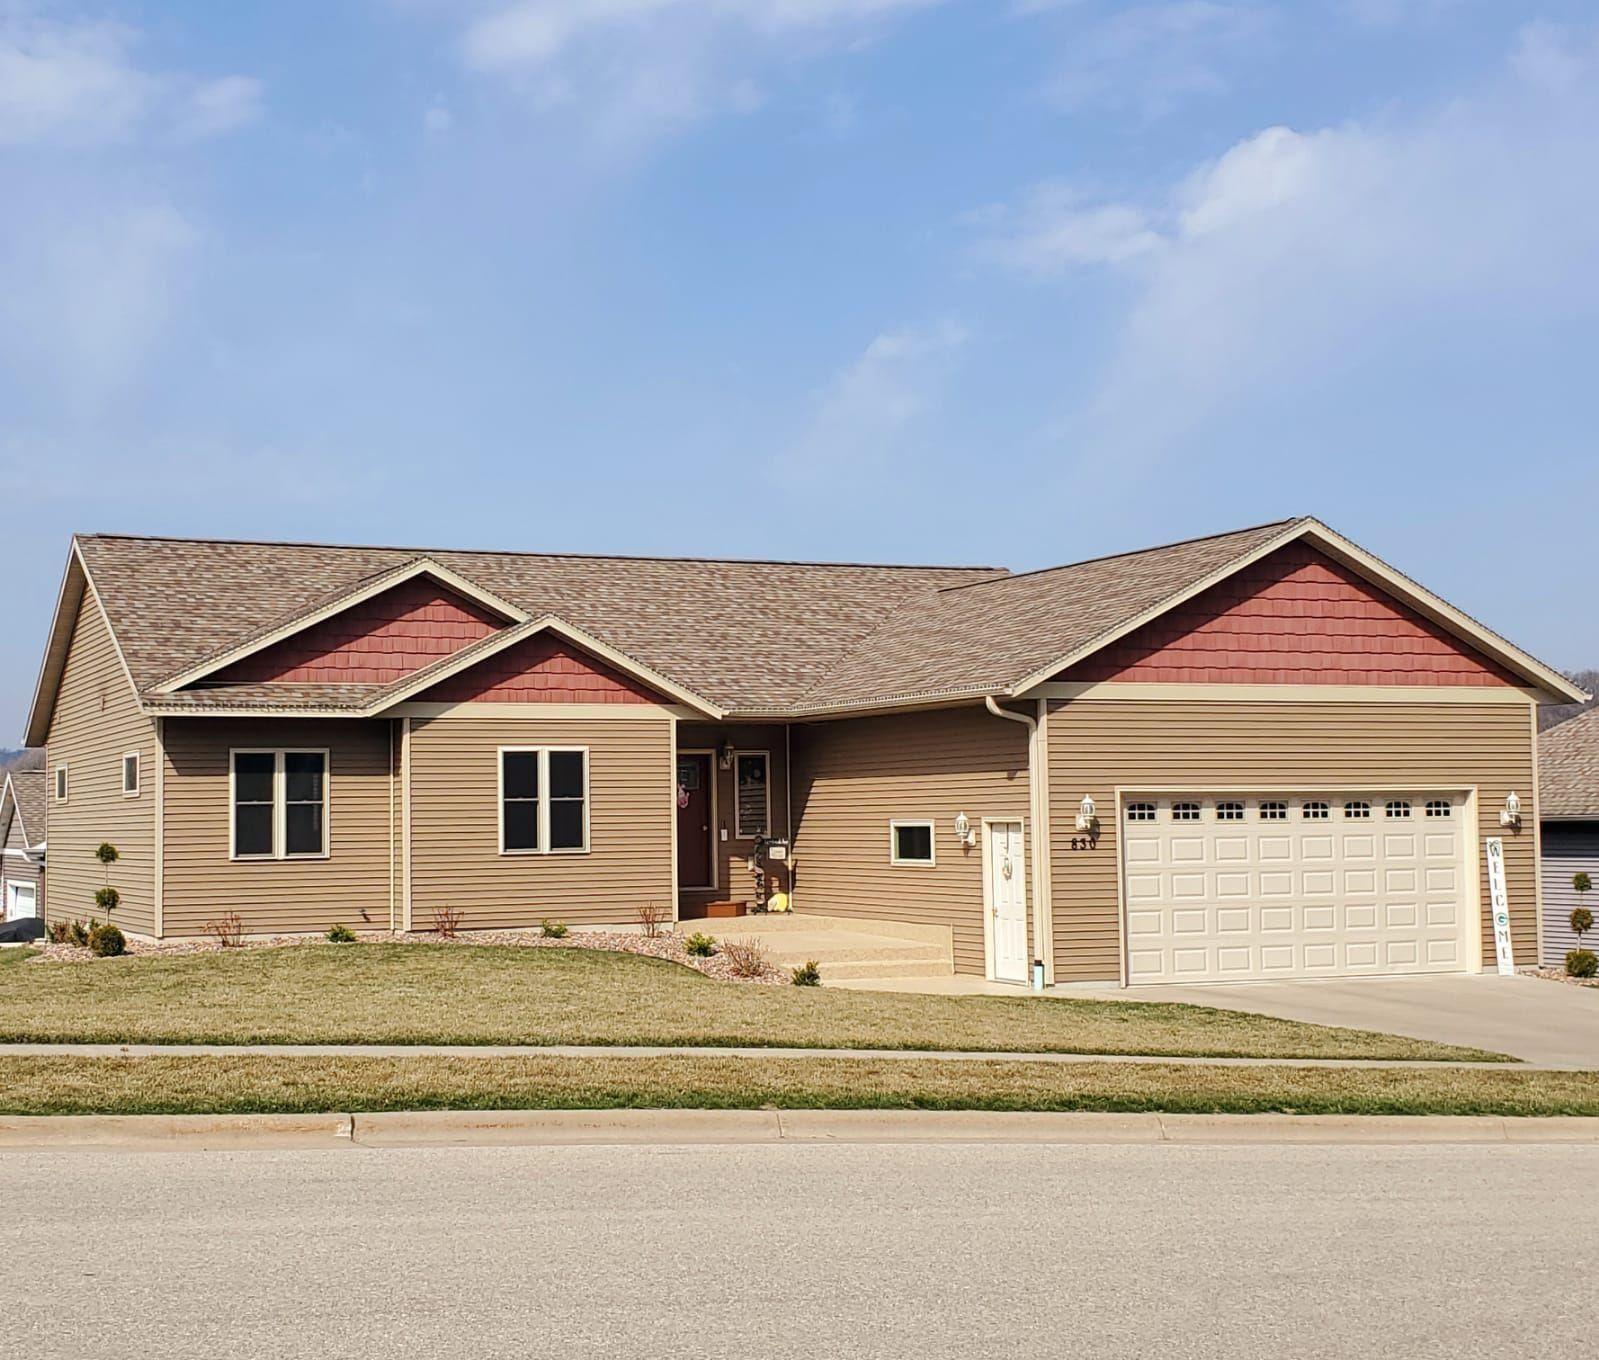 830 WAGON DR, West Salem, WI 54669 - MLS#: 1733856